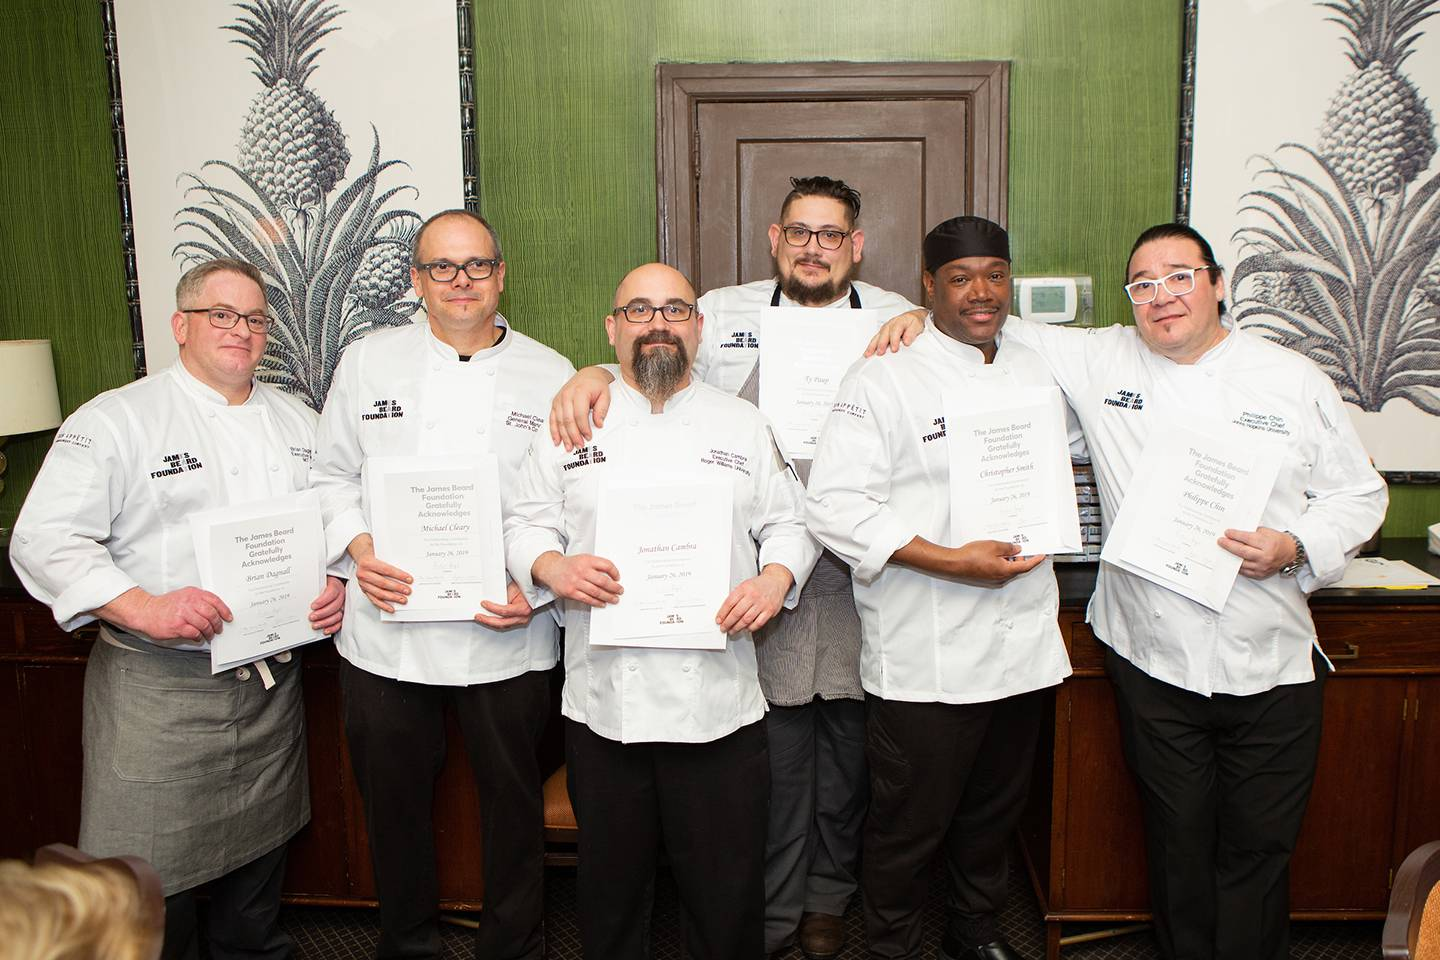 Group photo of chefs